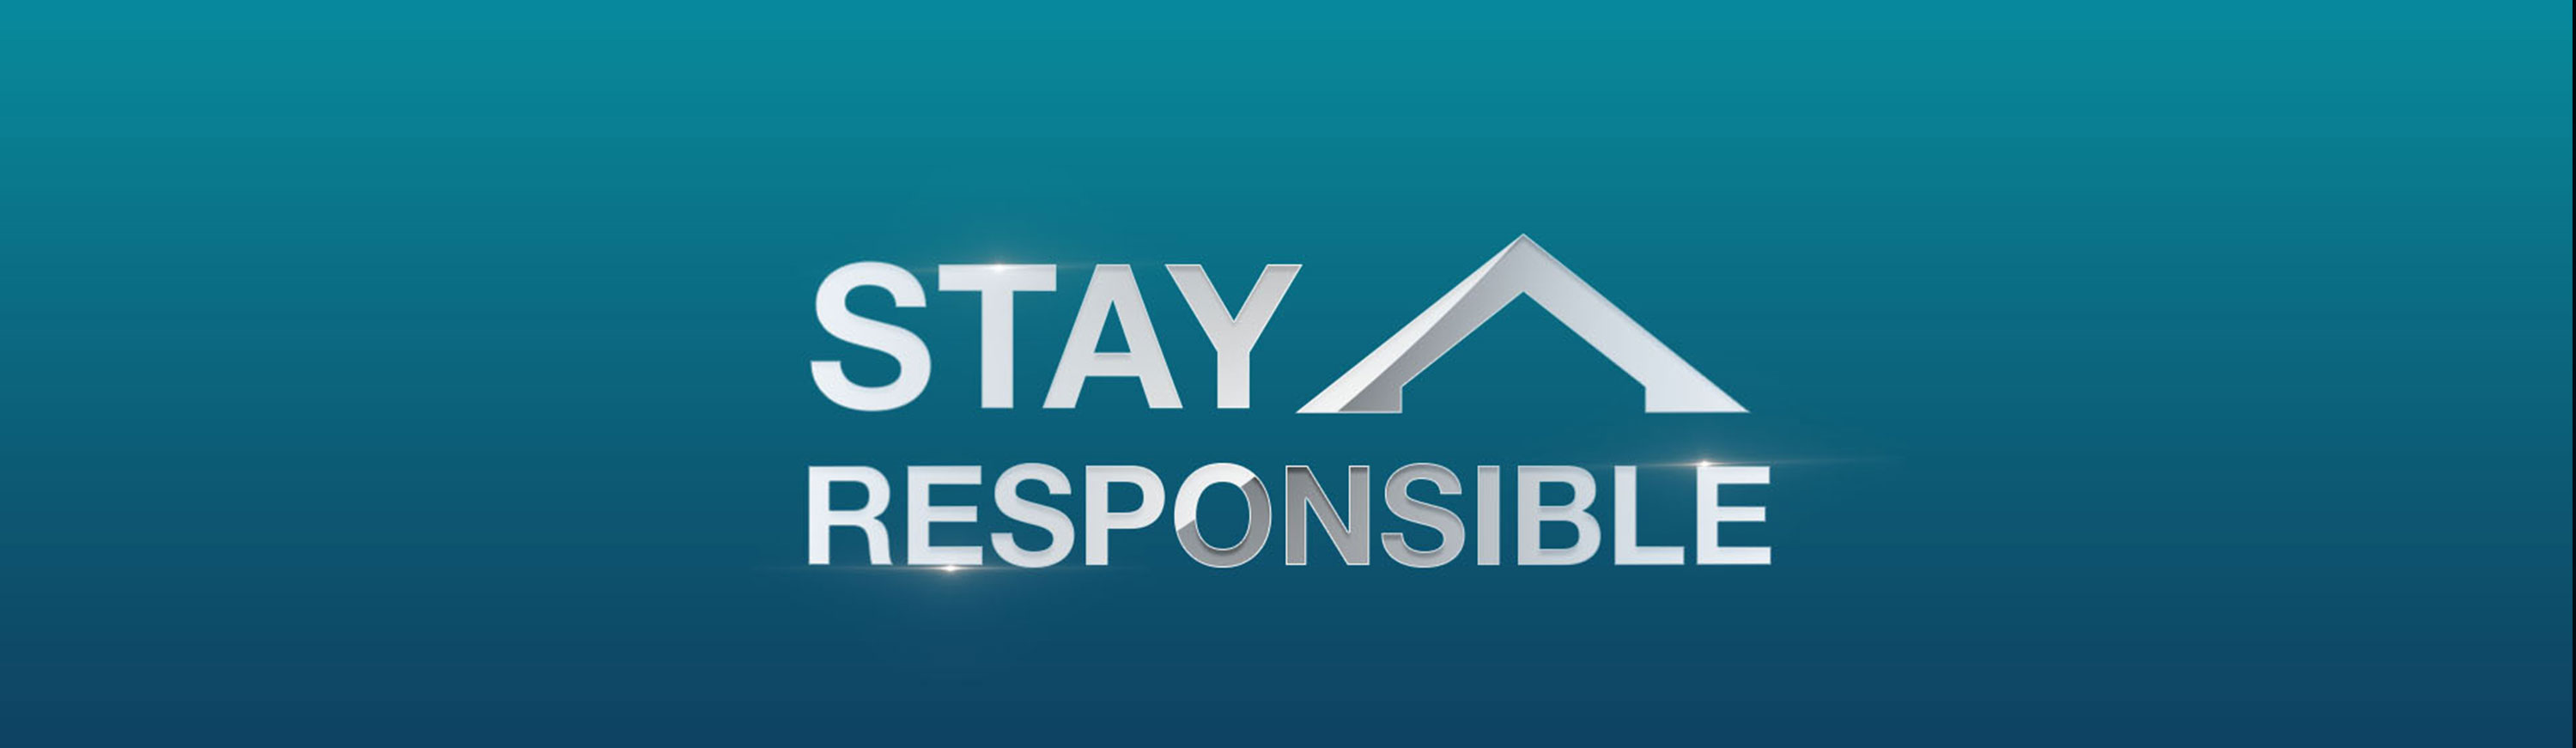 Stay Responsible